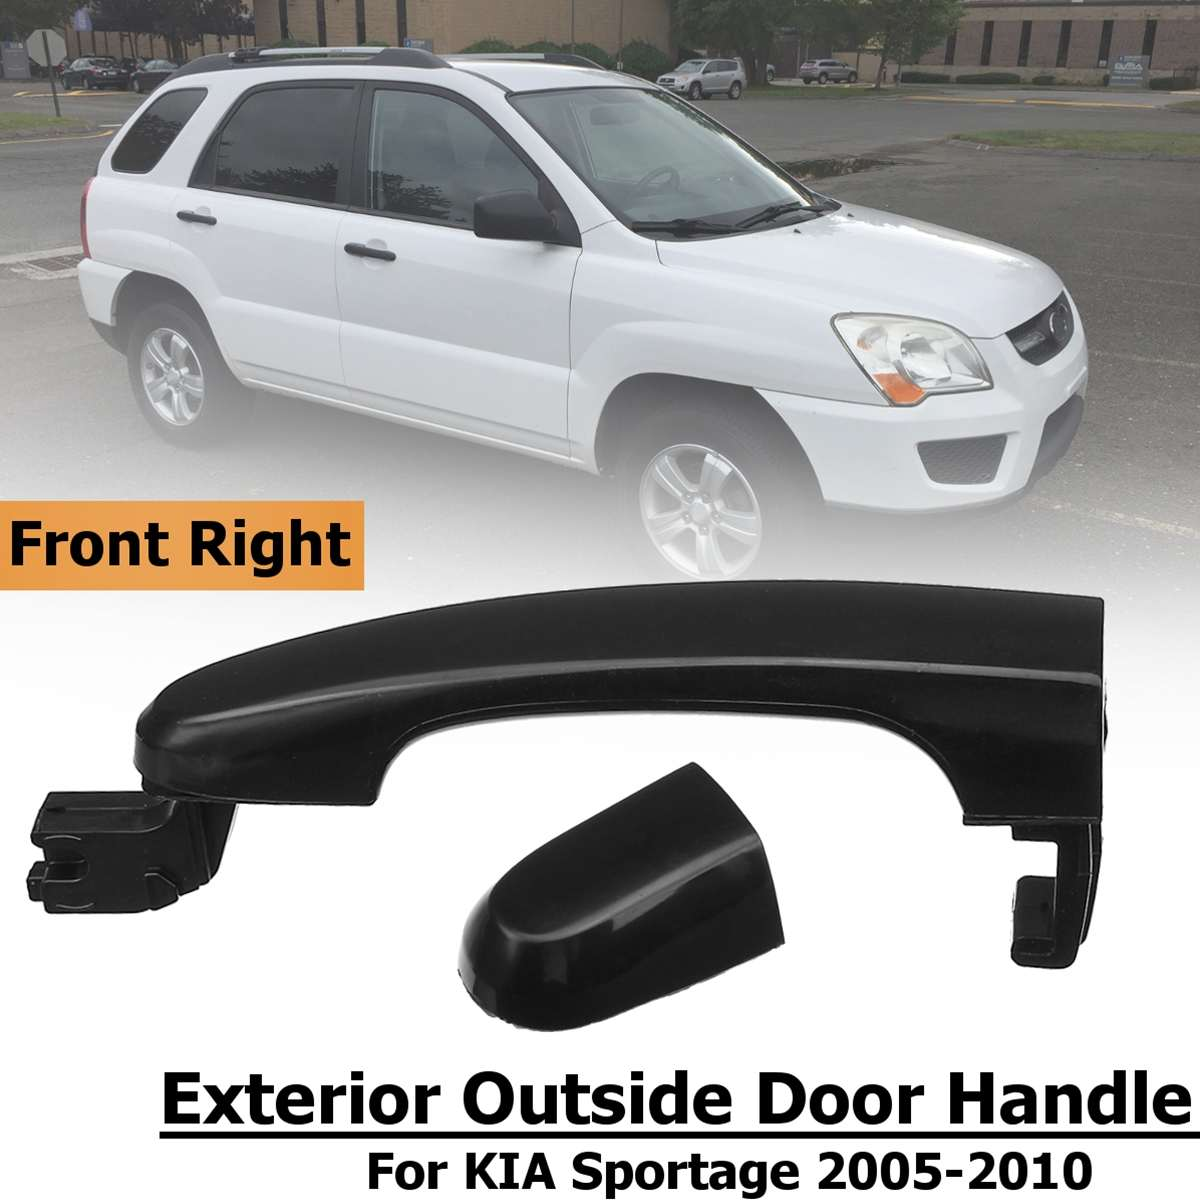 Front Left//Right Exterior Outside Door Pull Handle For KIA Sportage 2005-2010